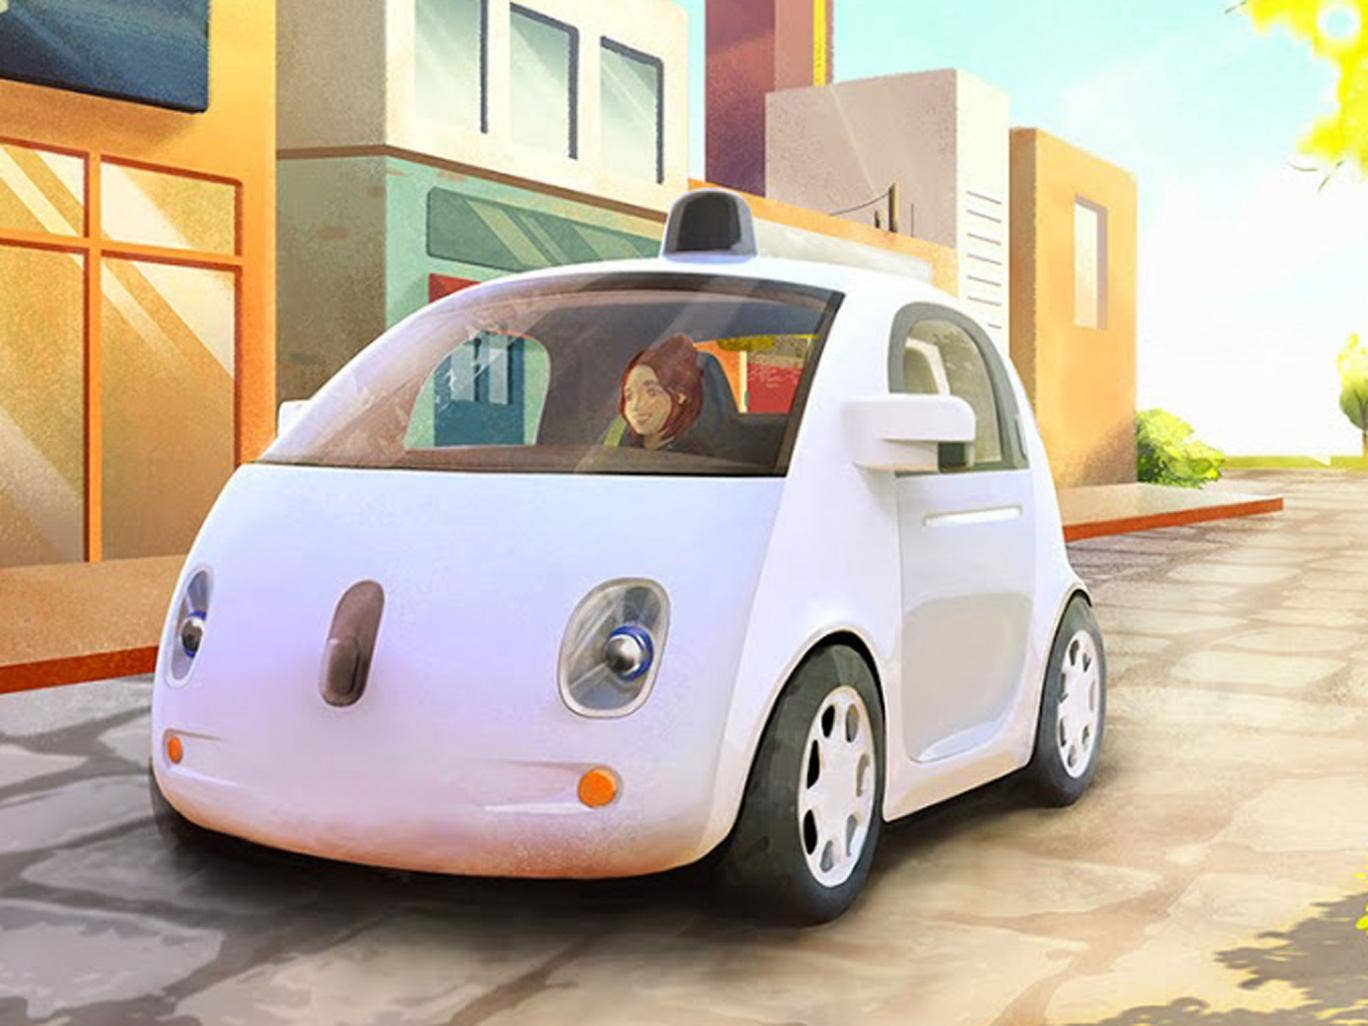 An artist's impression of the Google car